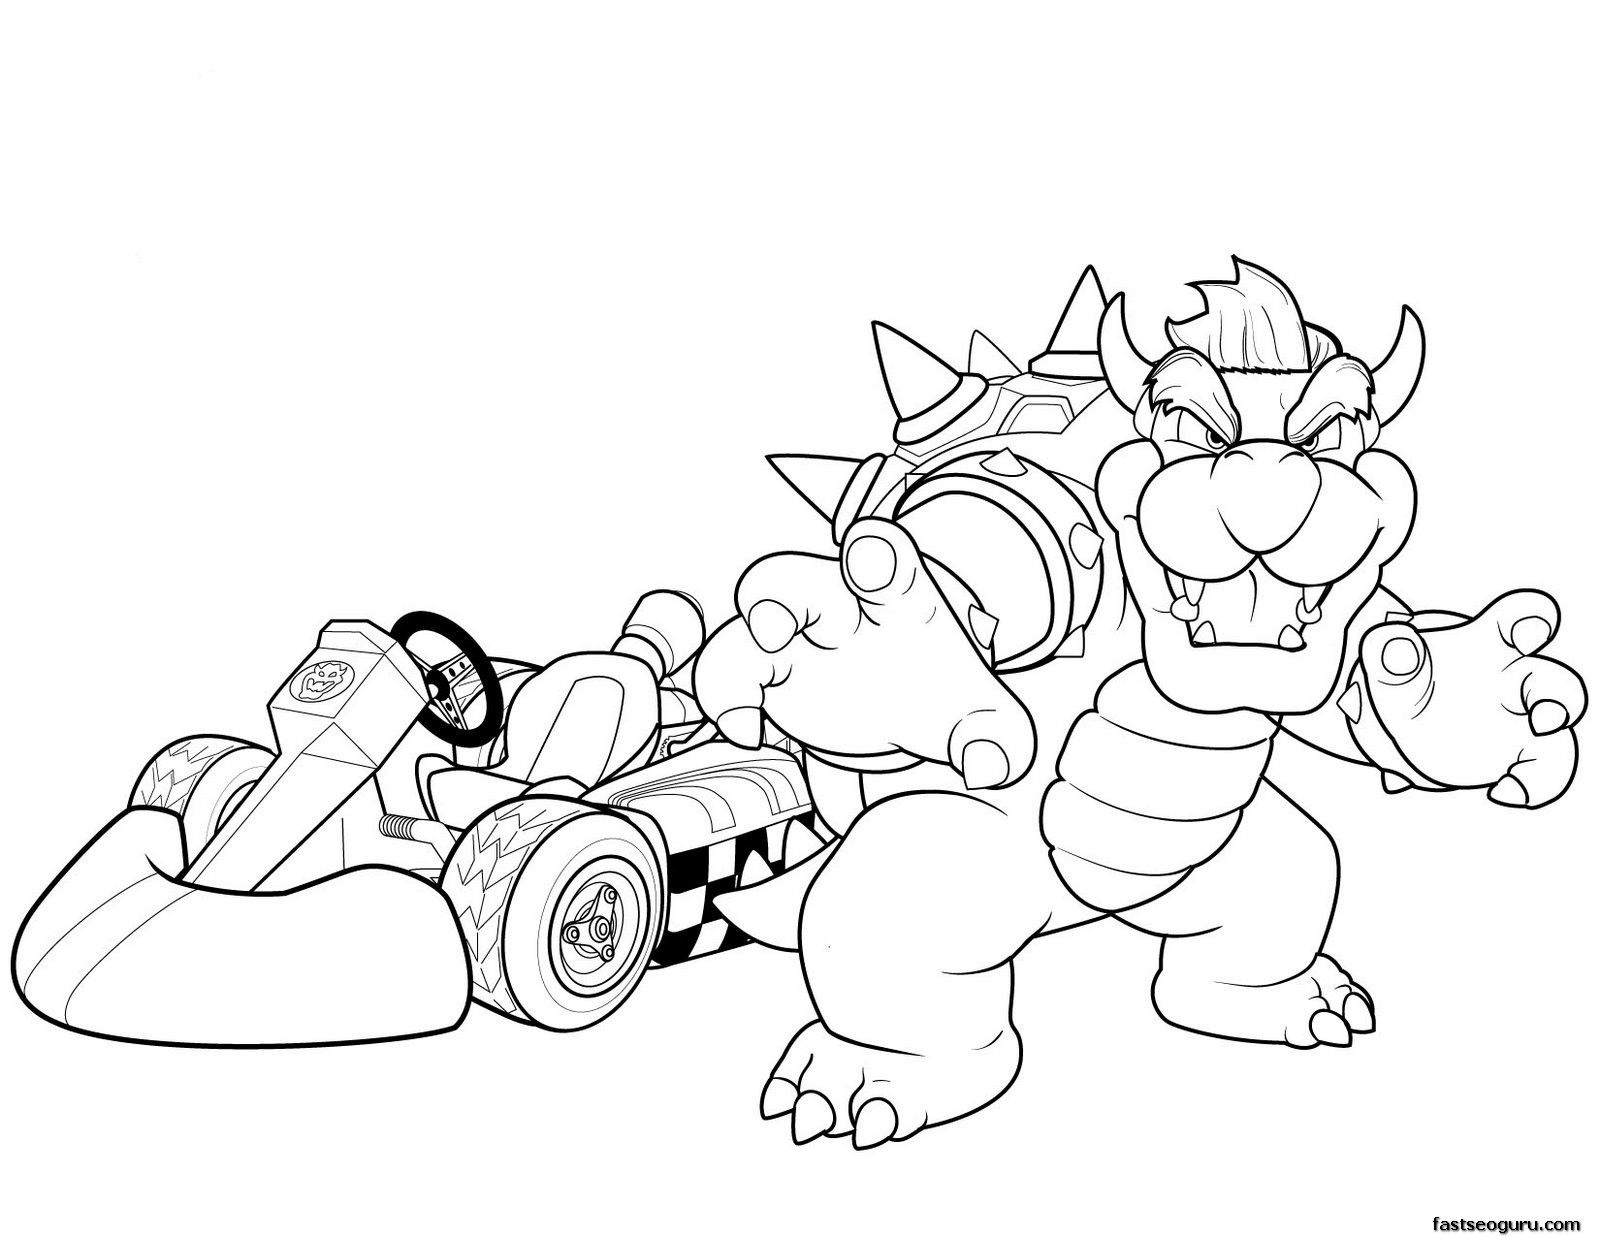 Bowser Pictures To Print And Color - Coloring Pages for Kids and ...